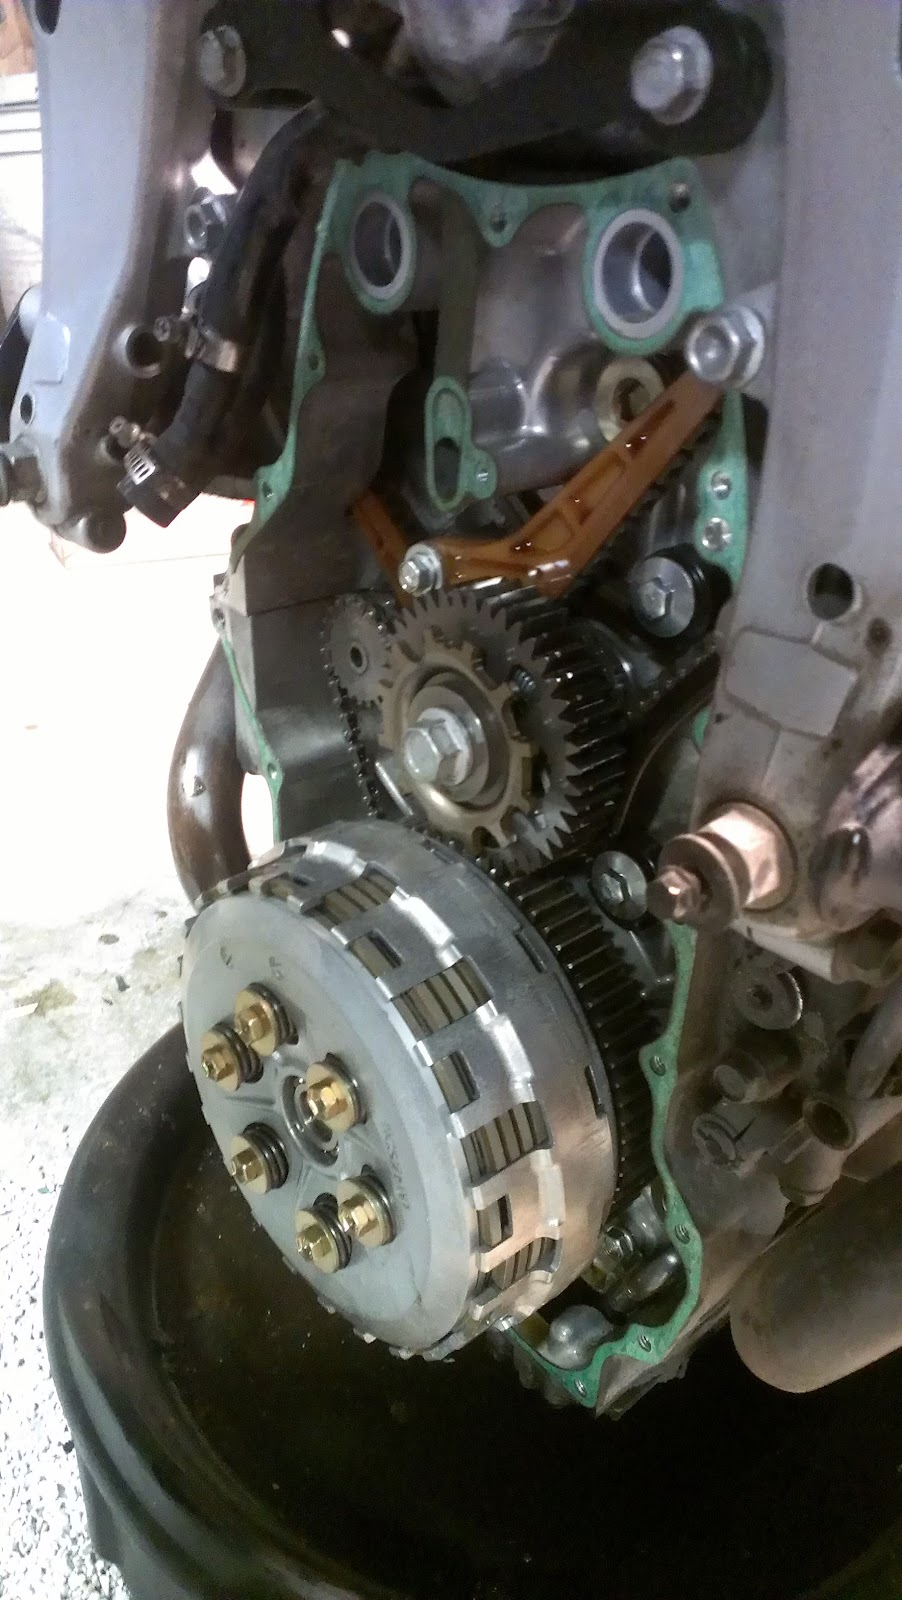 There is a most excellent diy guide on www st owners com which covers the removal of the front case to deal with replacing the clutch so i ll not say much